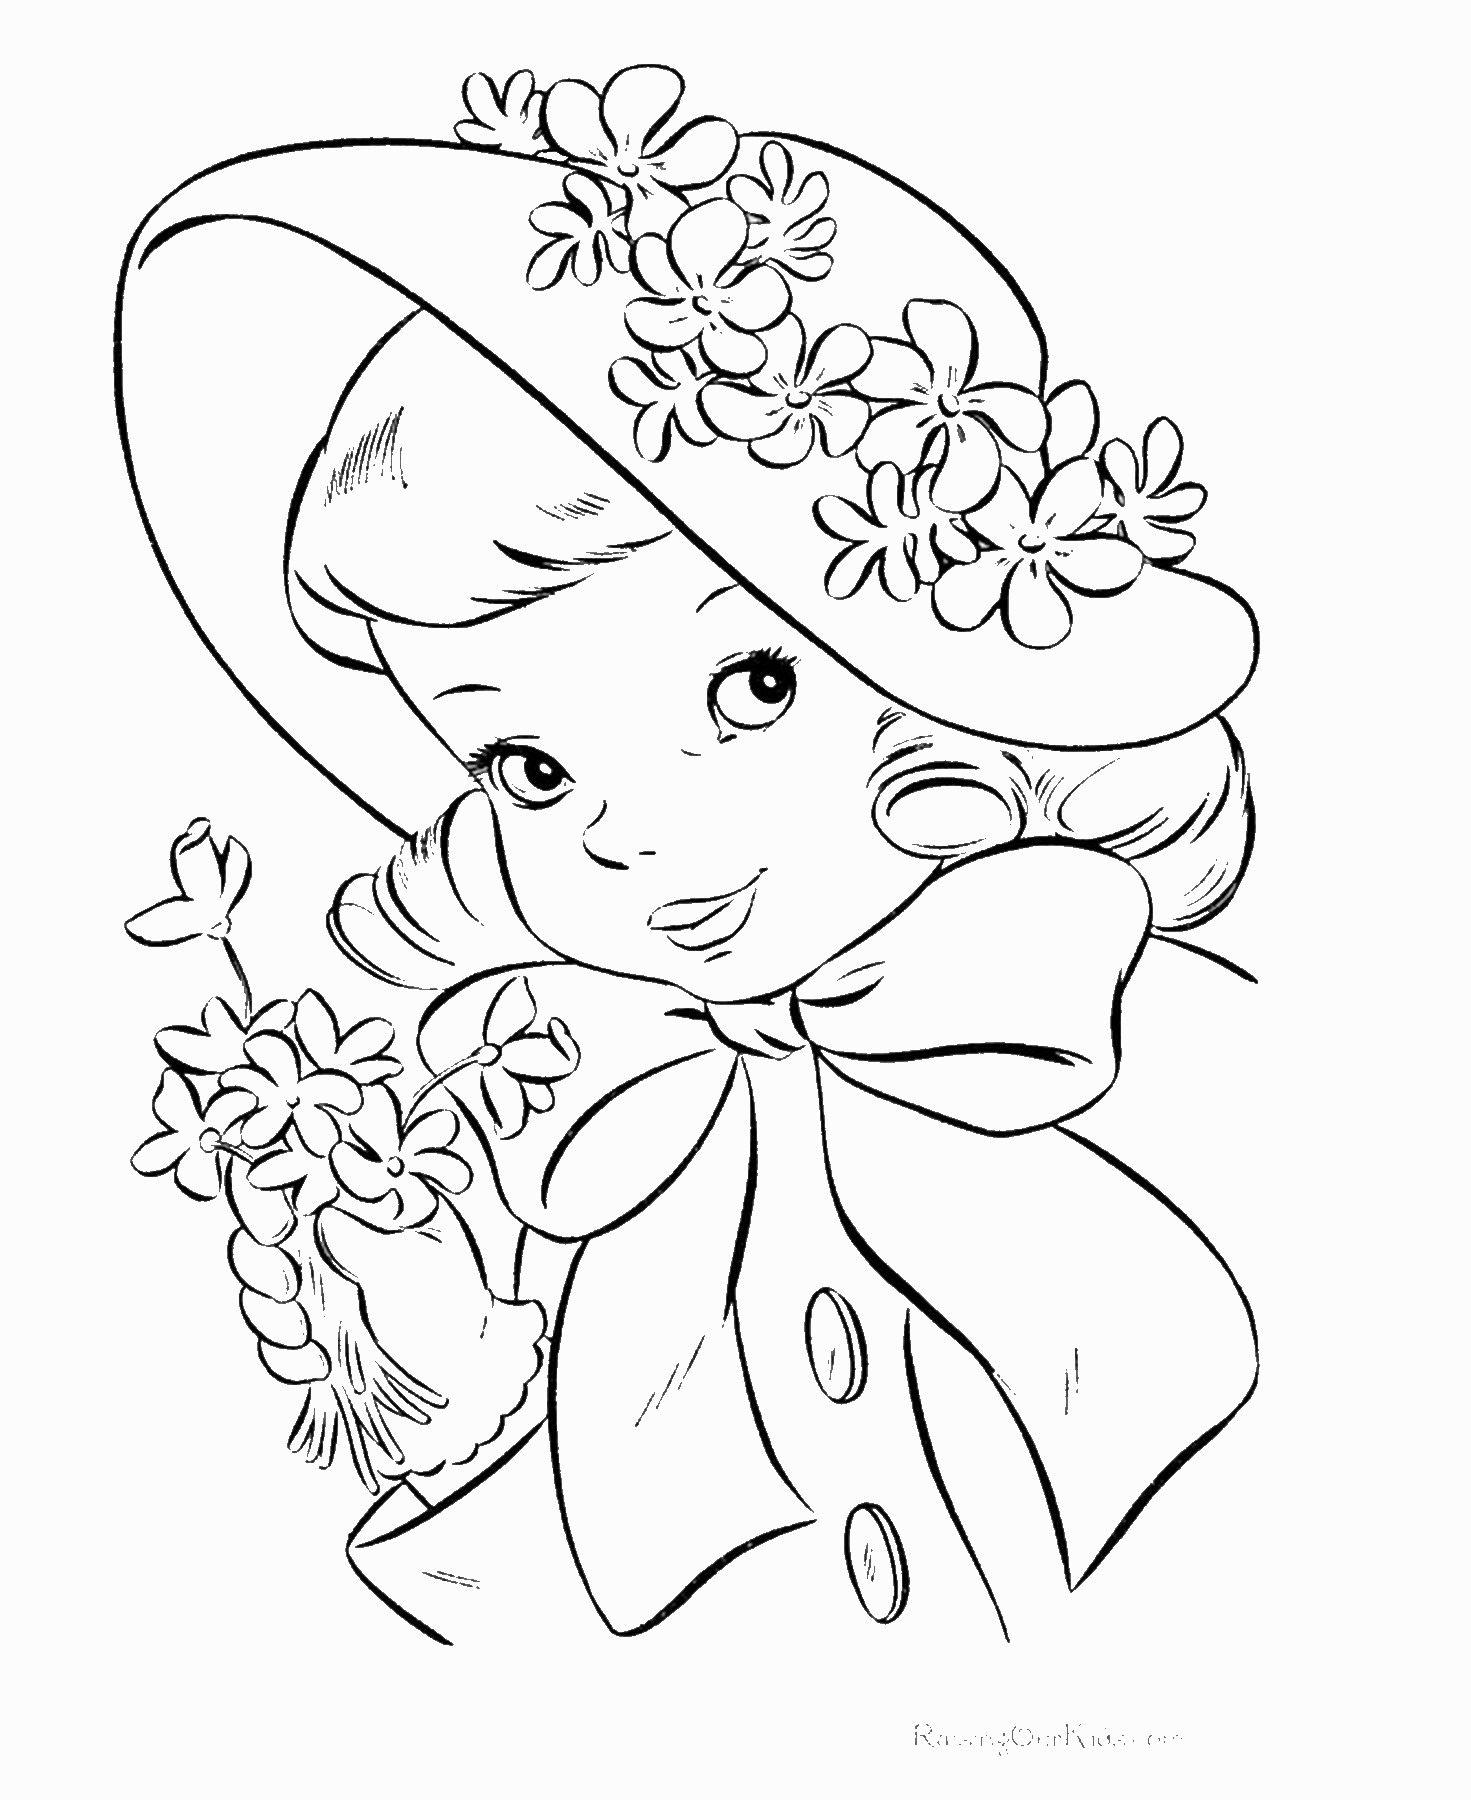 tea party colouring pages tea party coloring pages party colouring tea pages